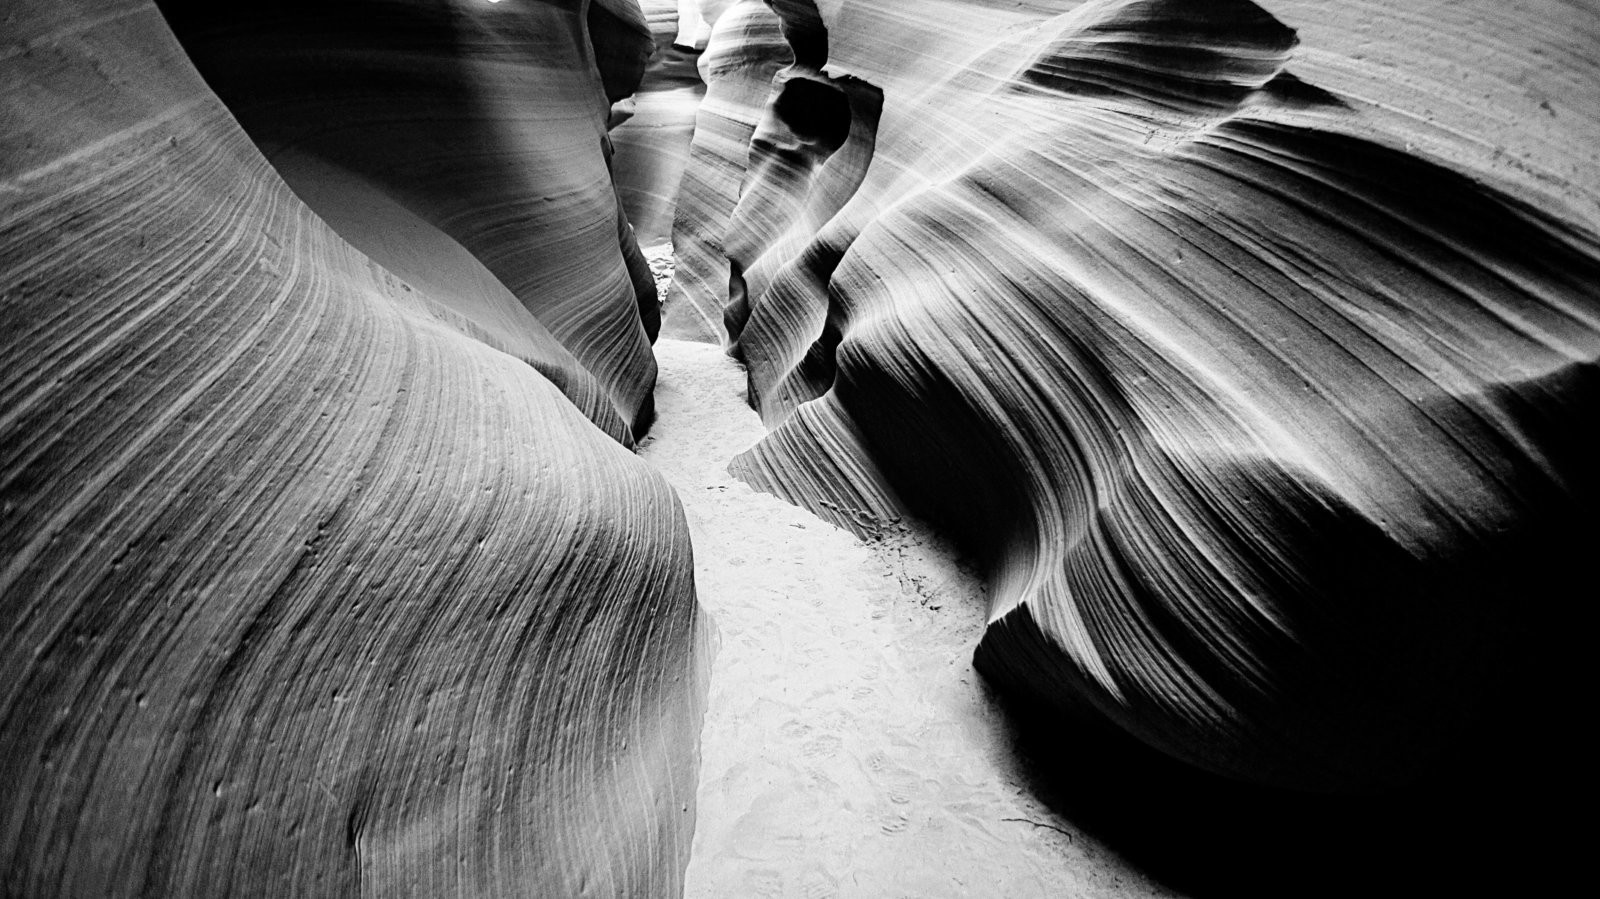 Sasha_Reiko_Photography_Travel_Utah_Arches_Canyon_Lands_Zion_Grand_Canyon-41